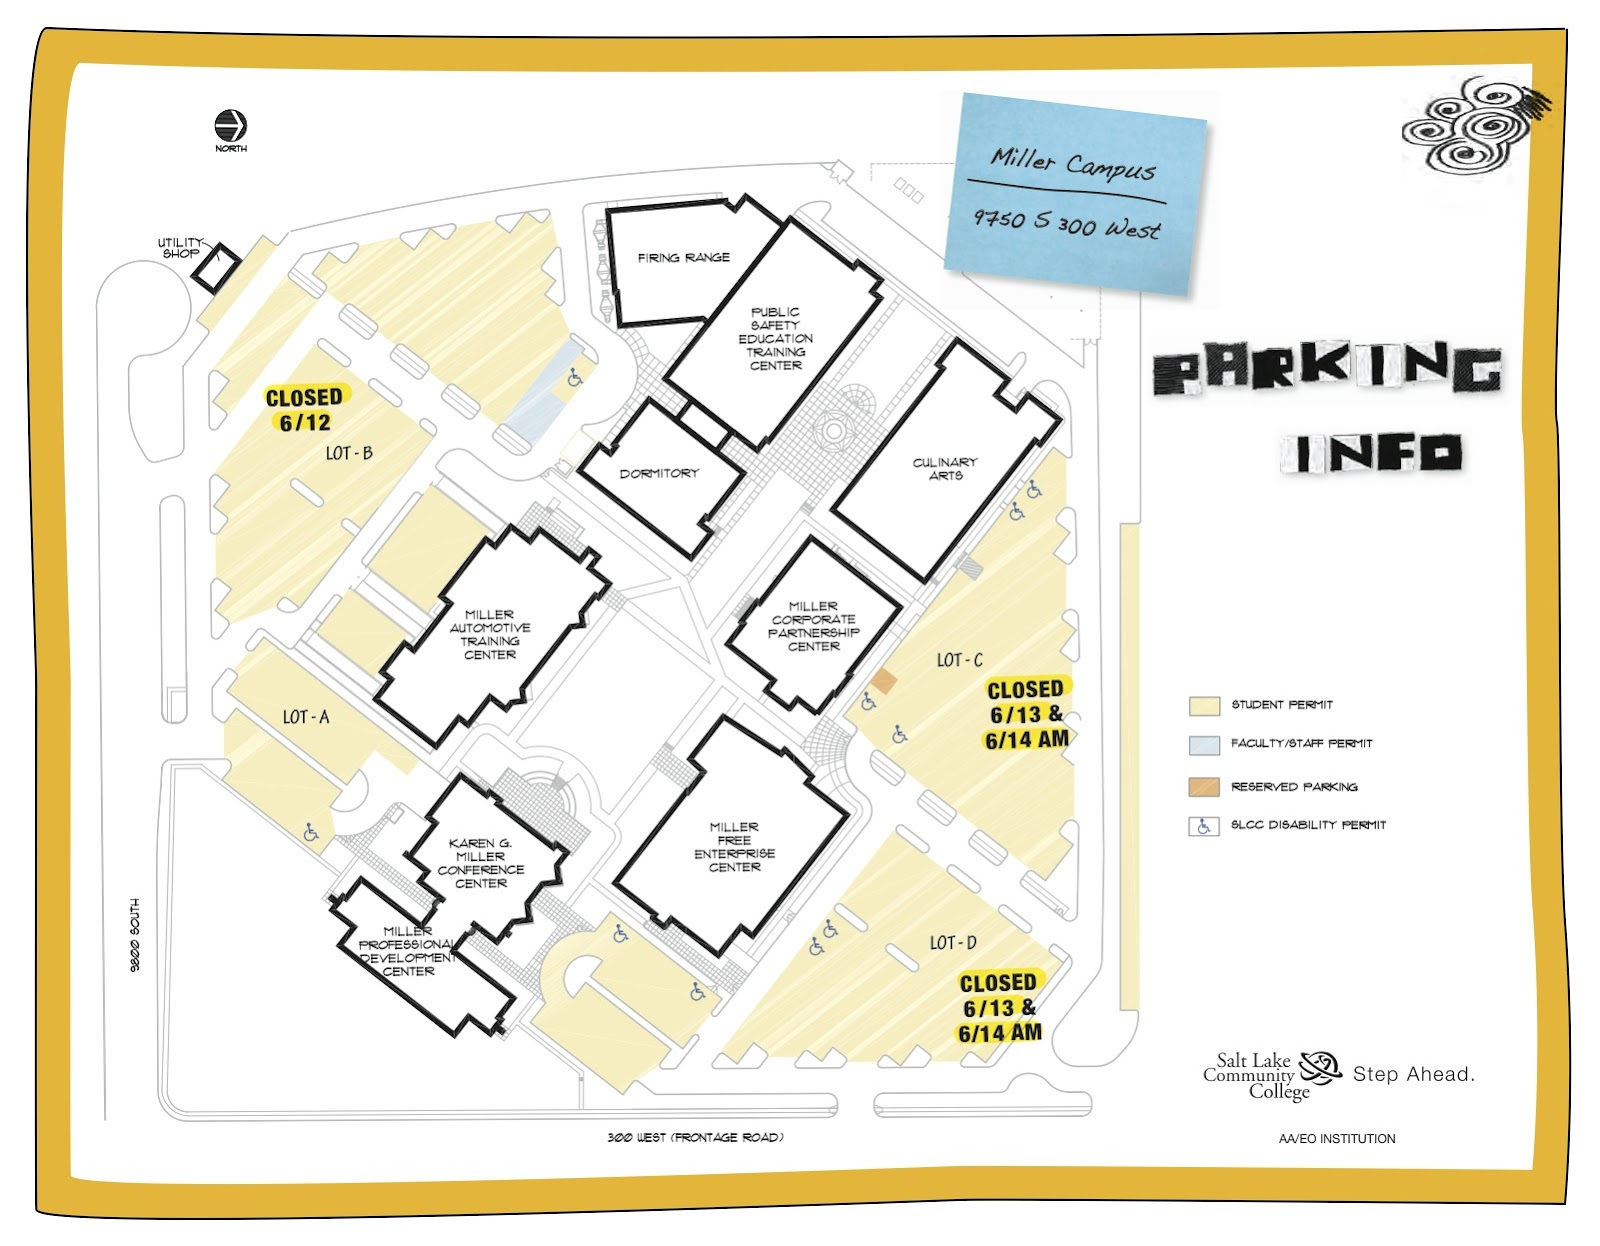 Slcc Jordan Campus Map | compressportnederland